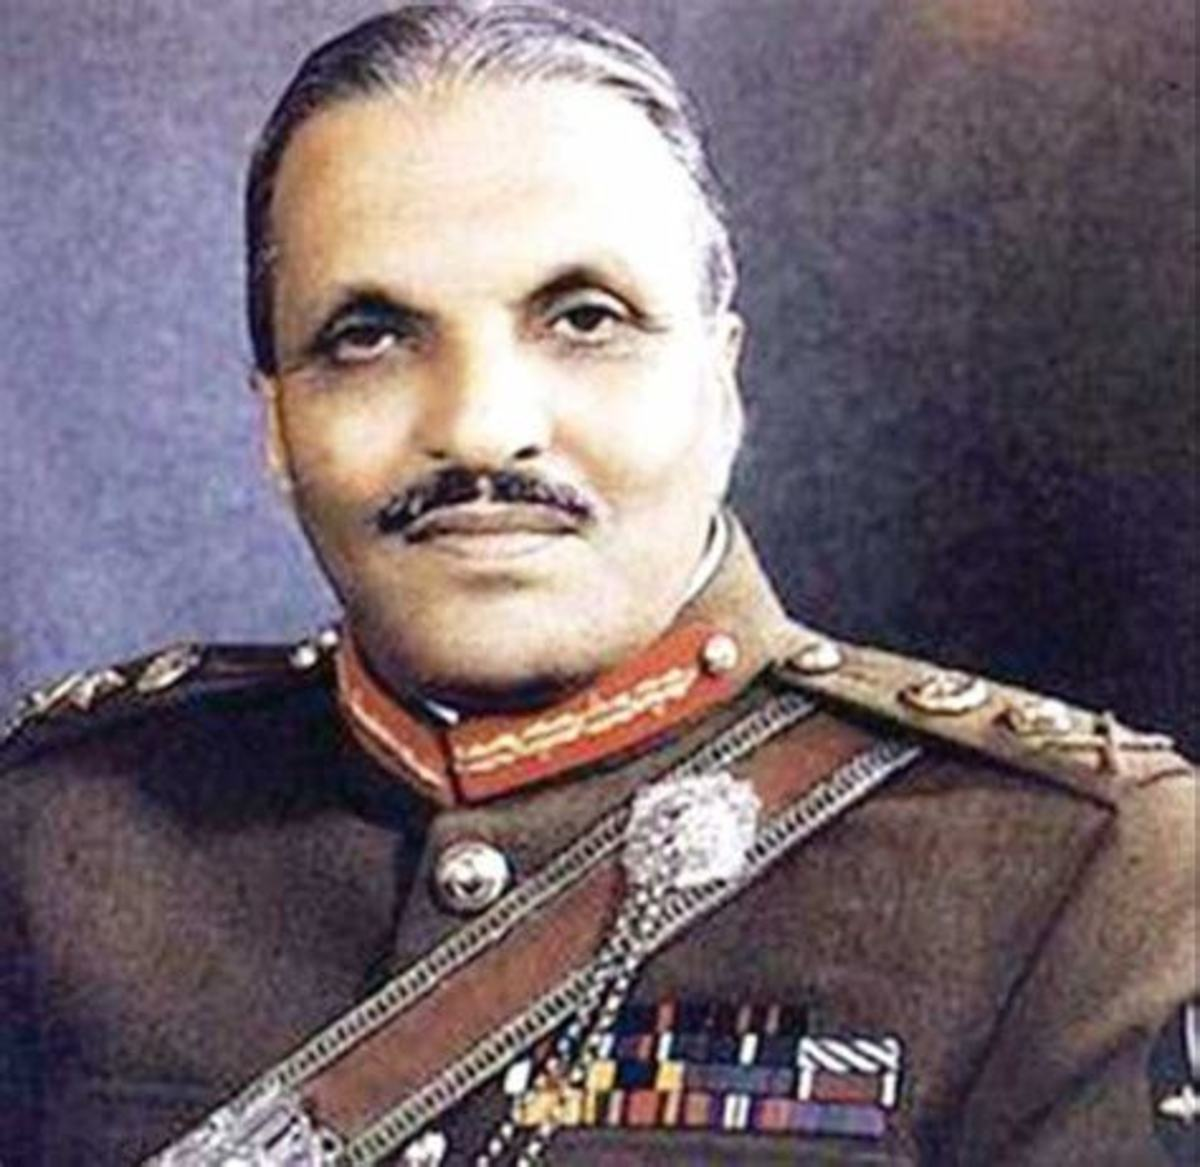 pakistan-and-doctrine-of-necessityonly-country-in-the-world-to-use-this-law-to-justify-military-rule